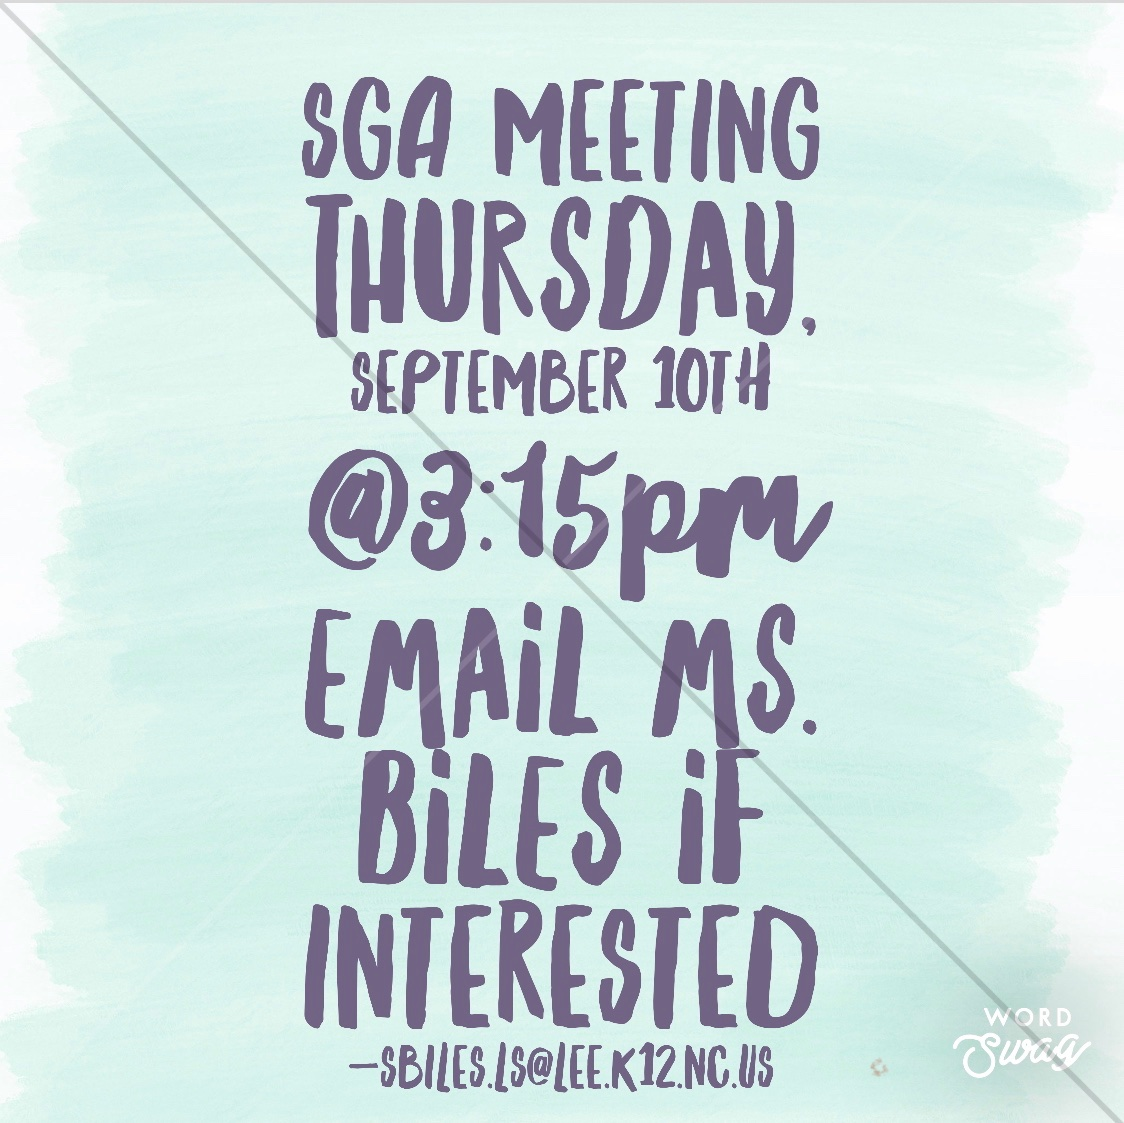 Virtual SGA meeting! Hope to see you there! https://t.co/Ozf3EHkUHX